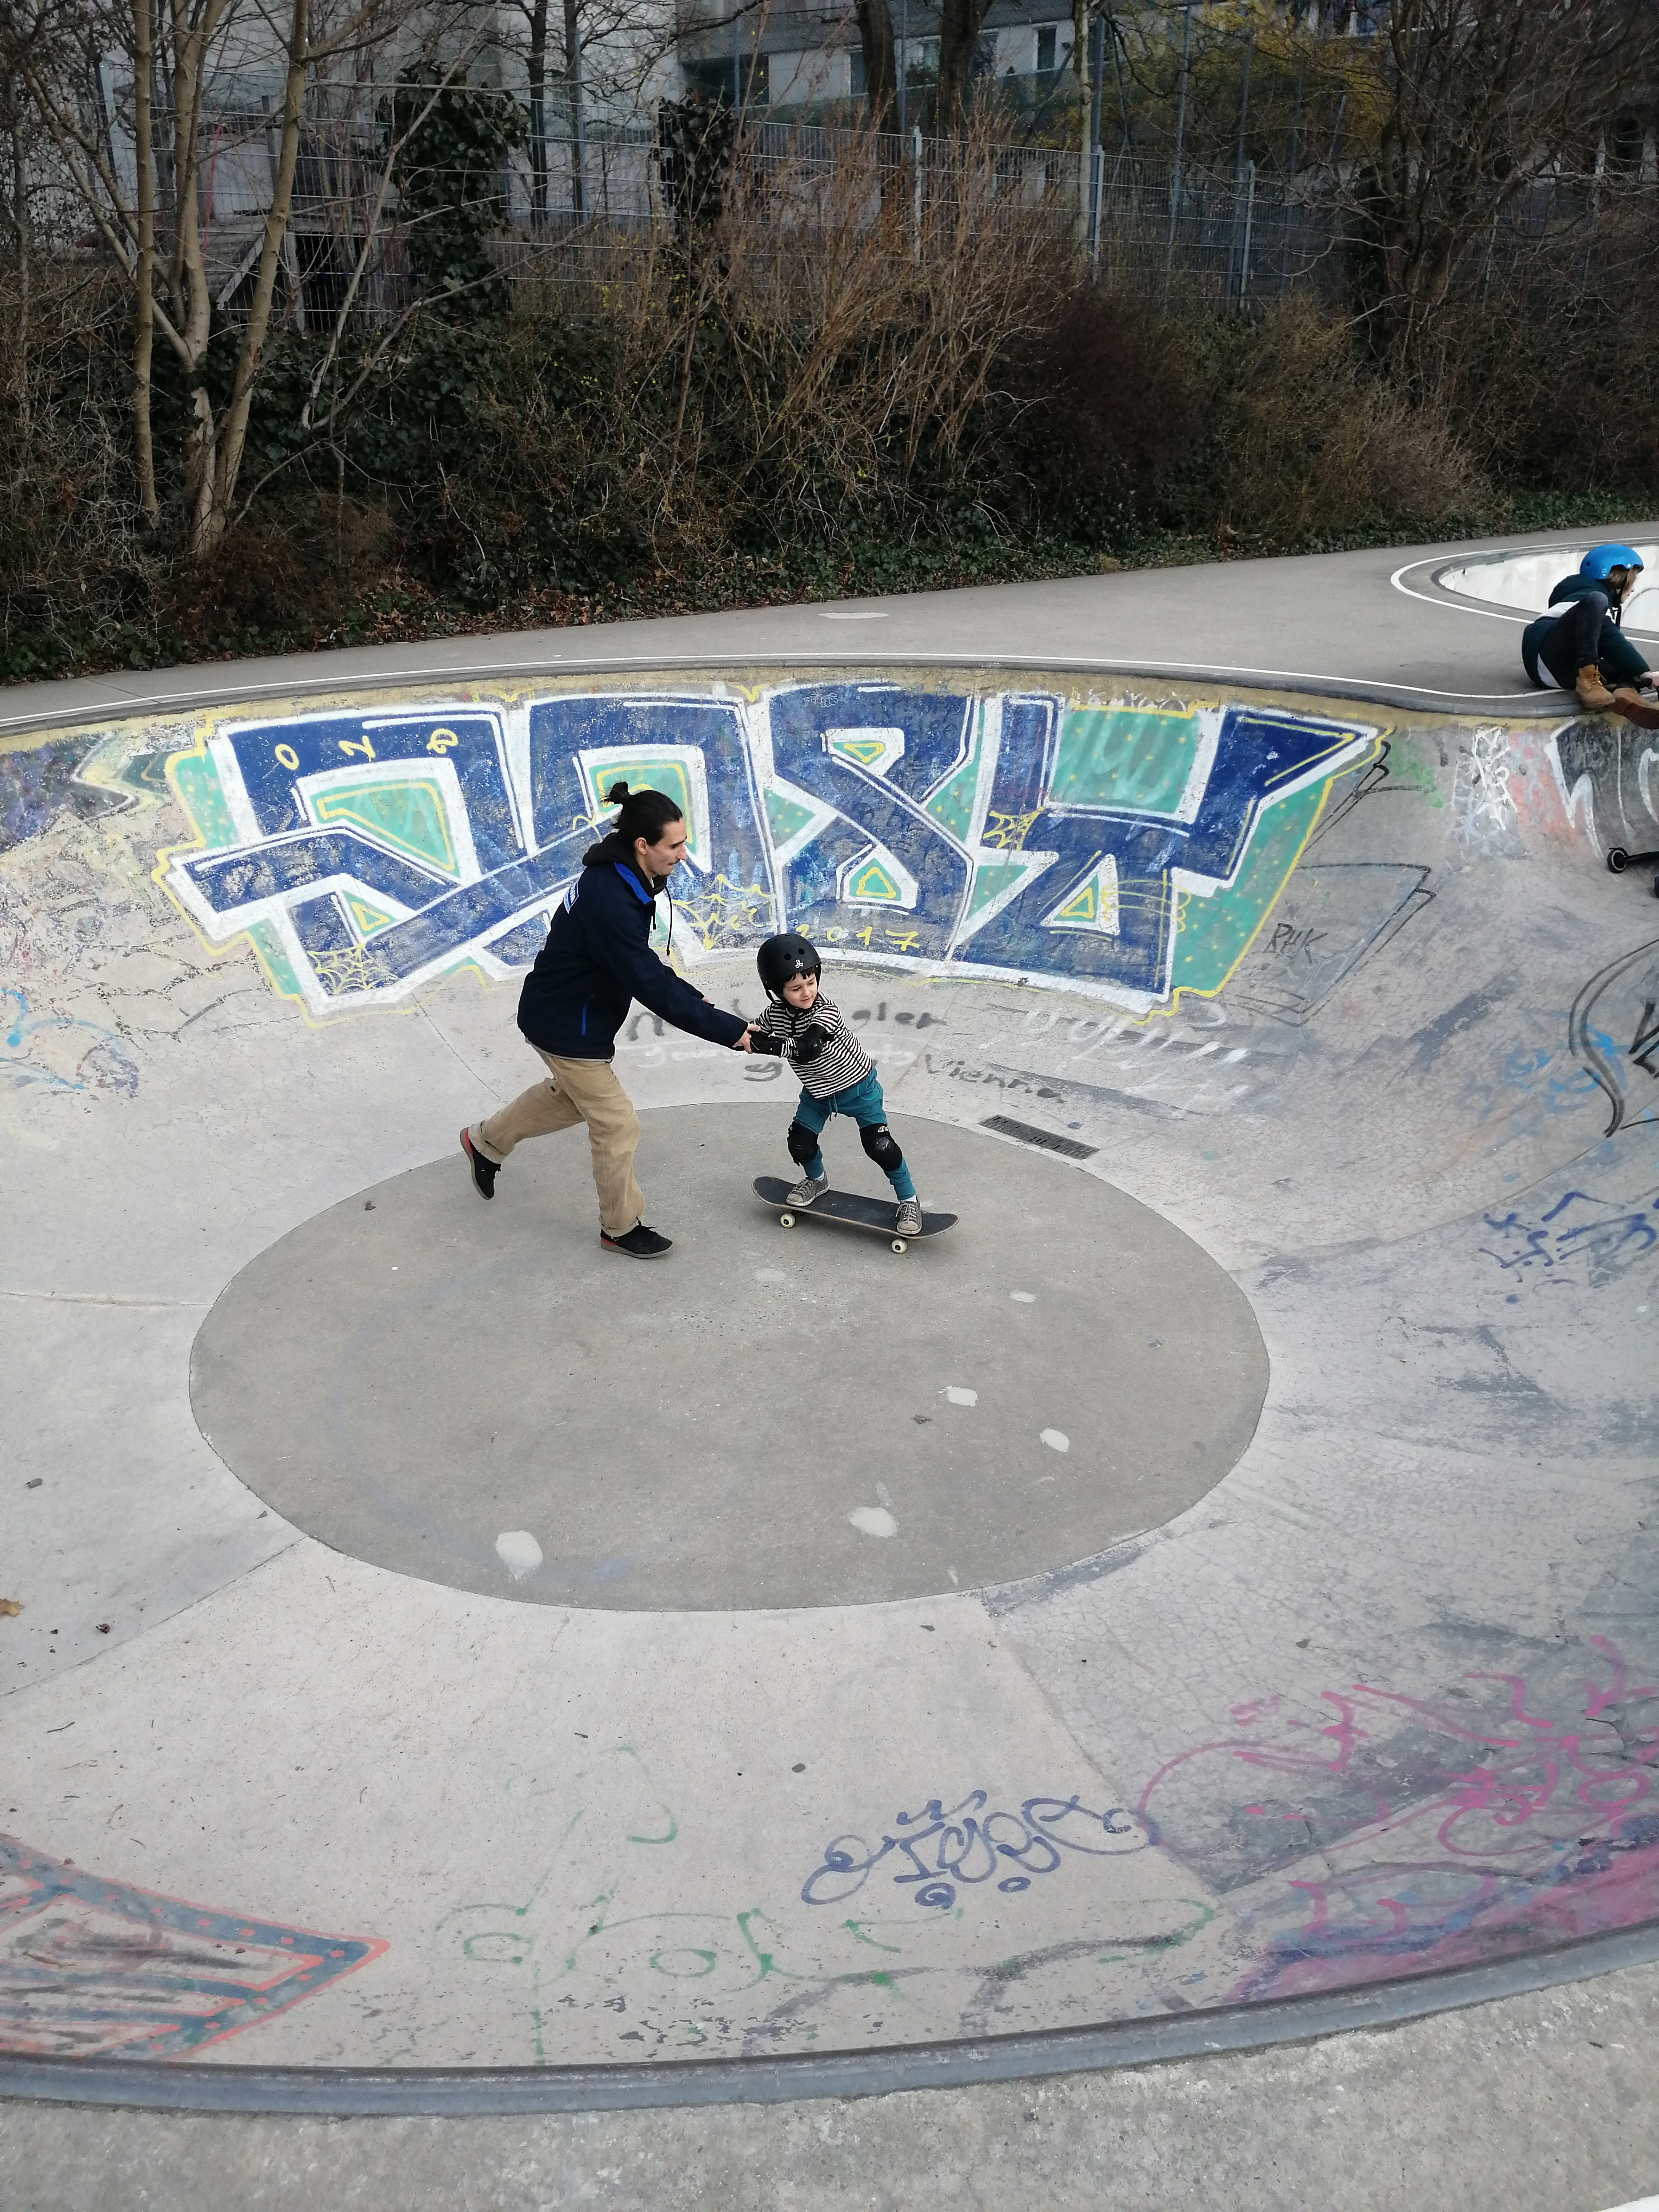 Skateworkshop_08_03_20_3